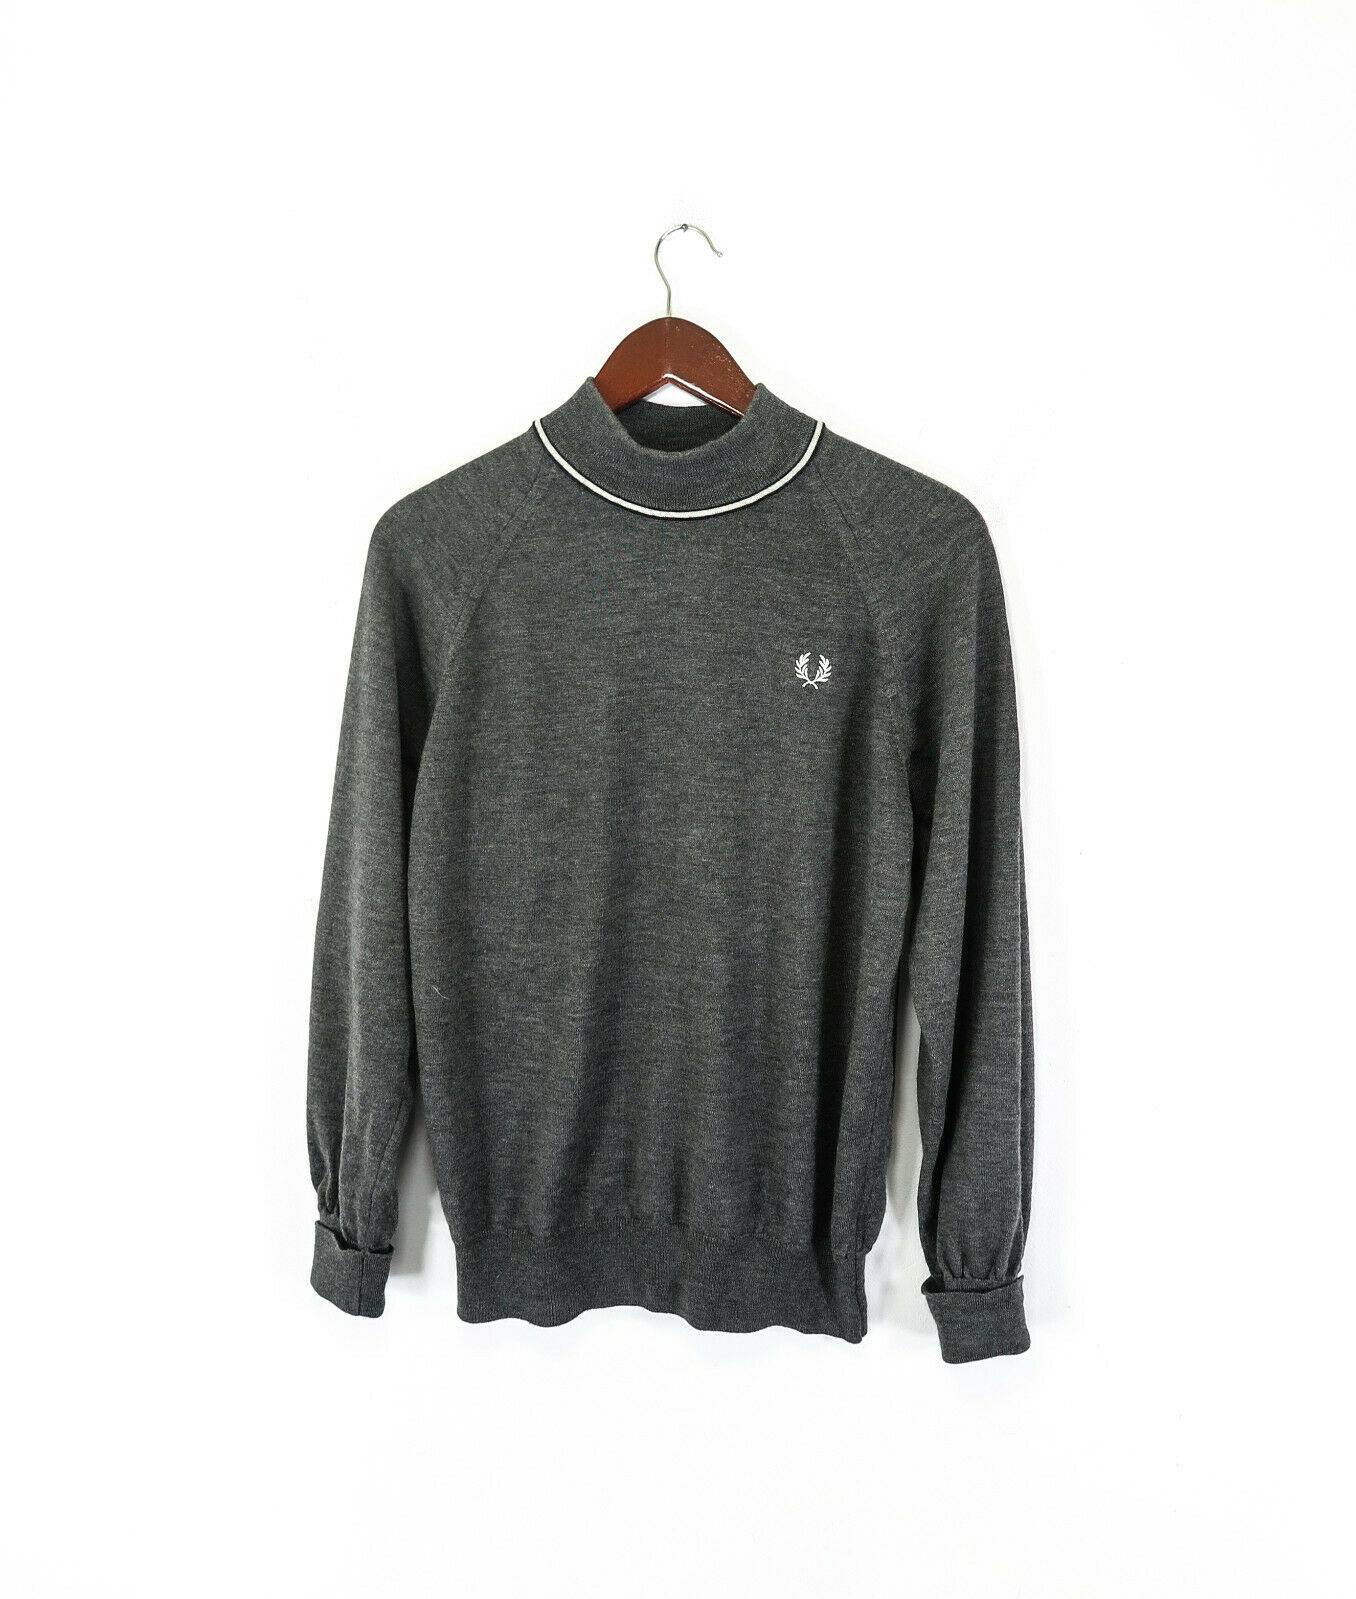 Fred Perry 100% Merino wool Men's Jumper Sweater Size 42''     106 cm